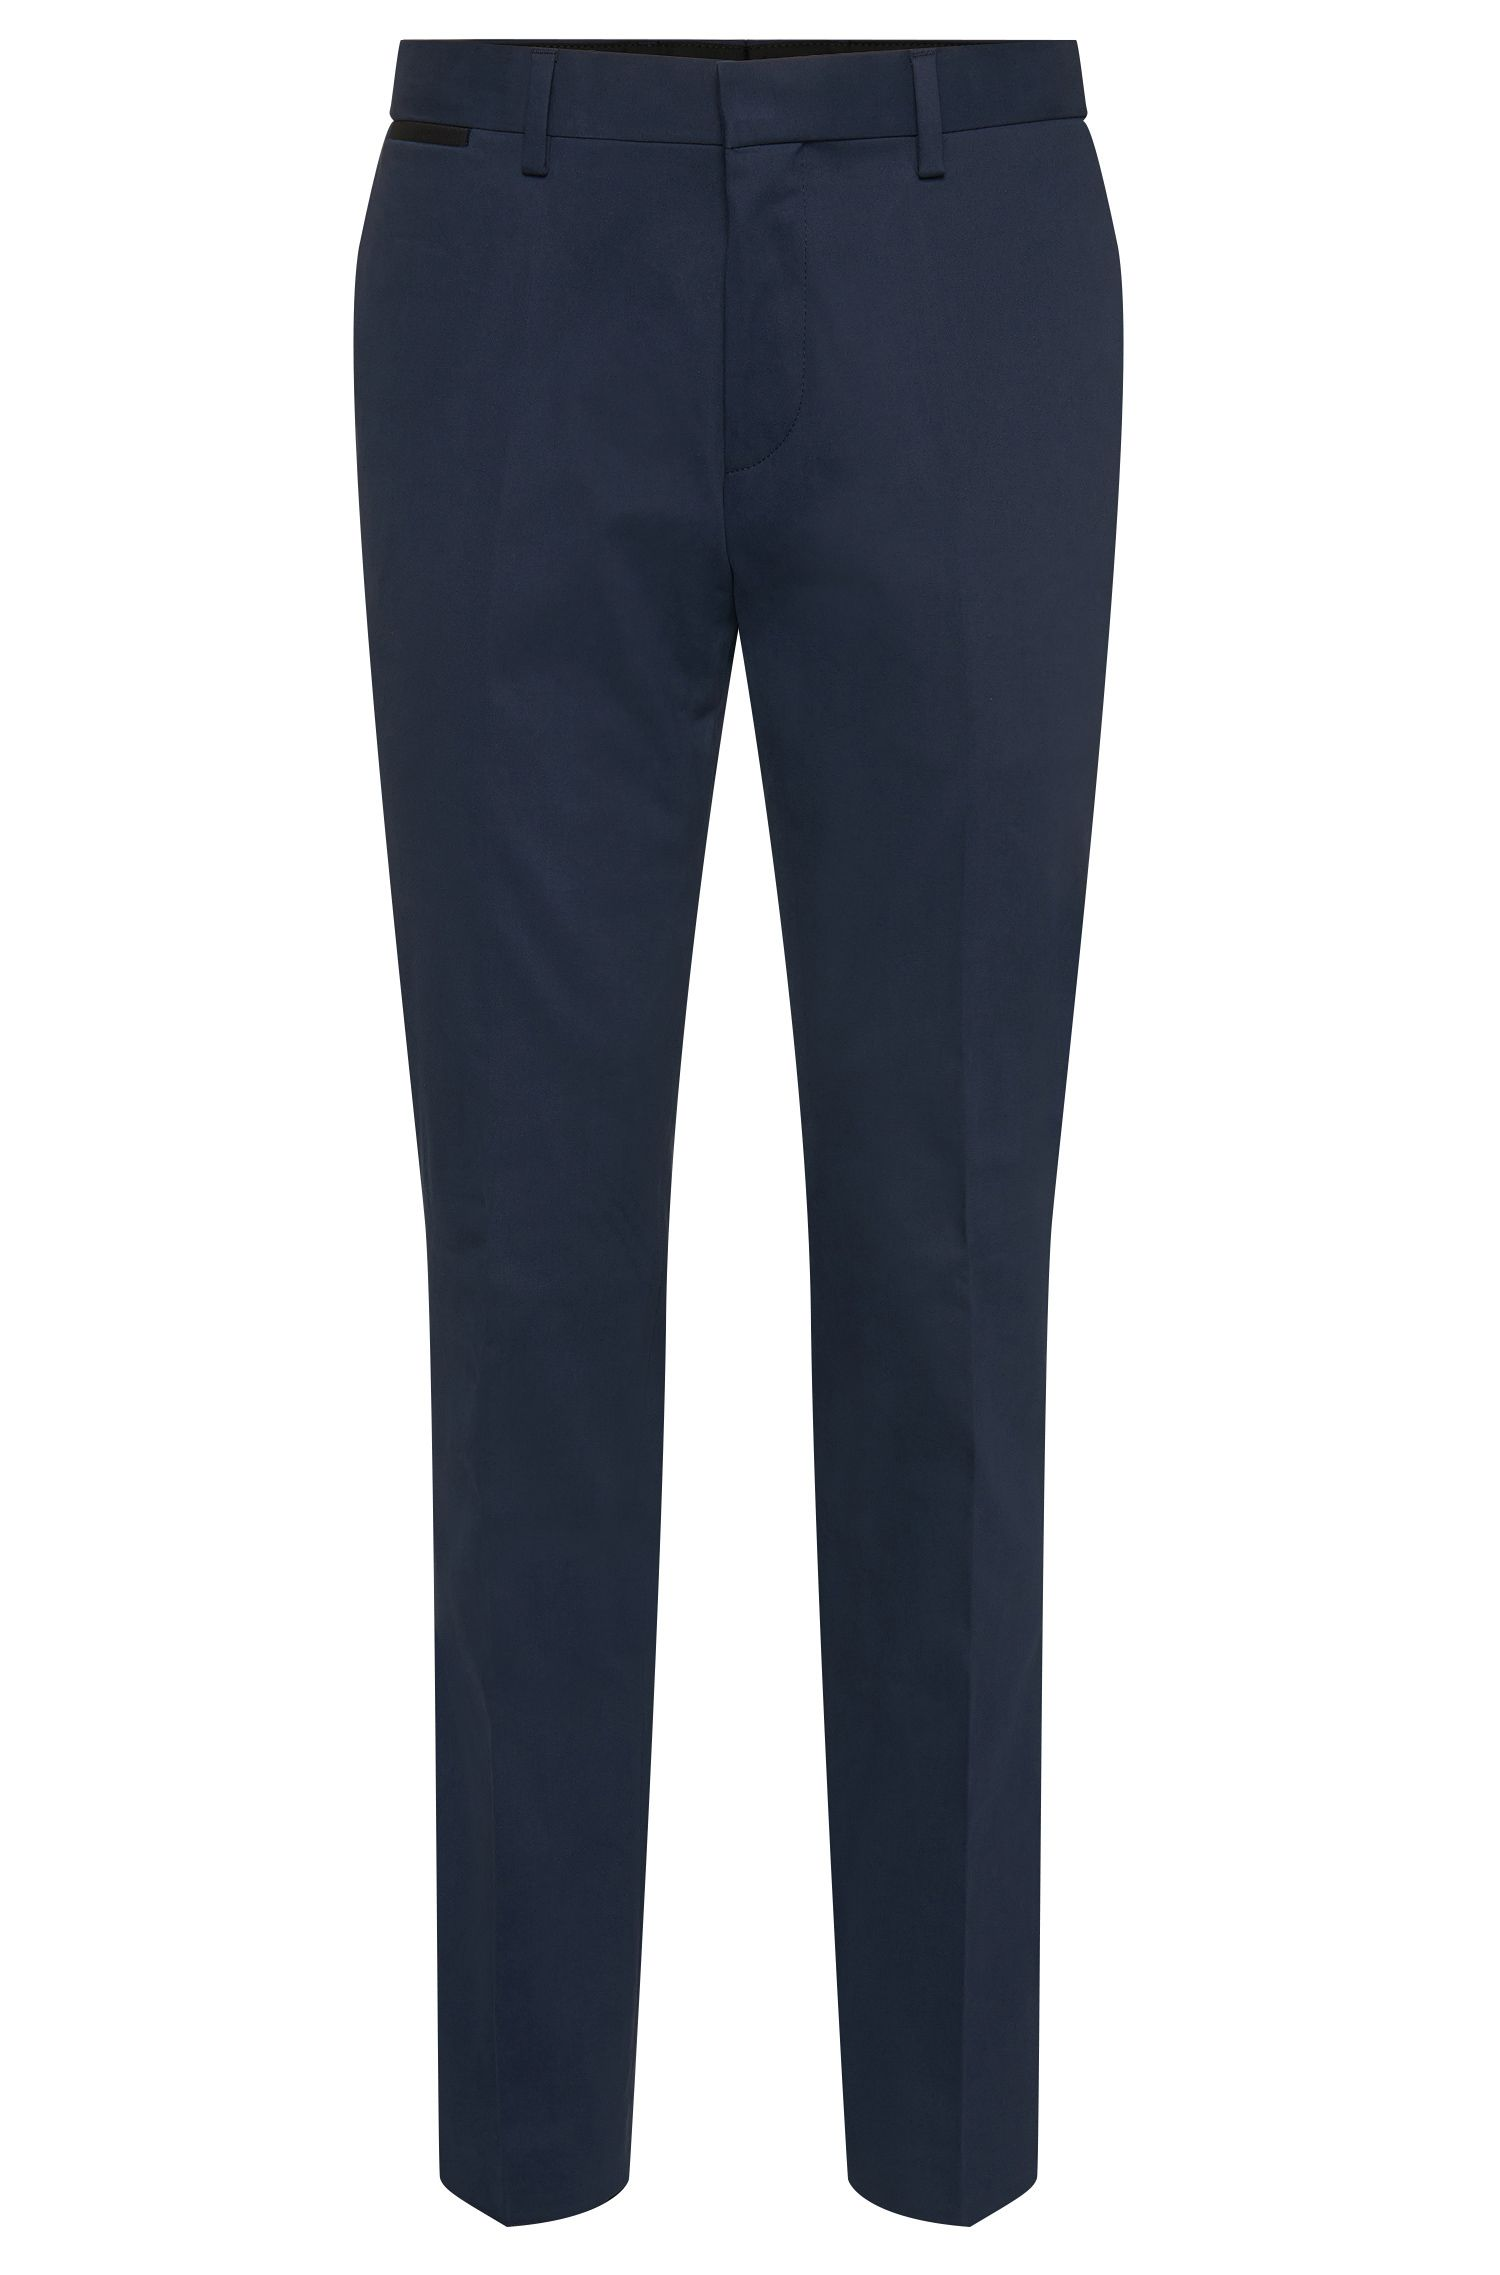 'Gehrys' | Slim Fit, Stretch Cotton Dress Pants